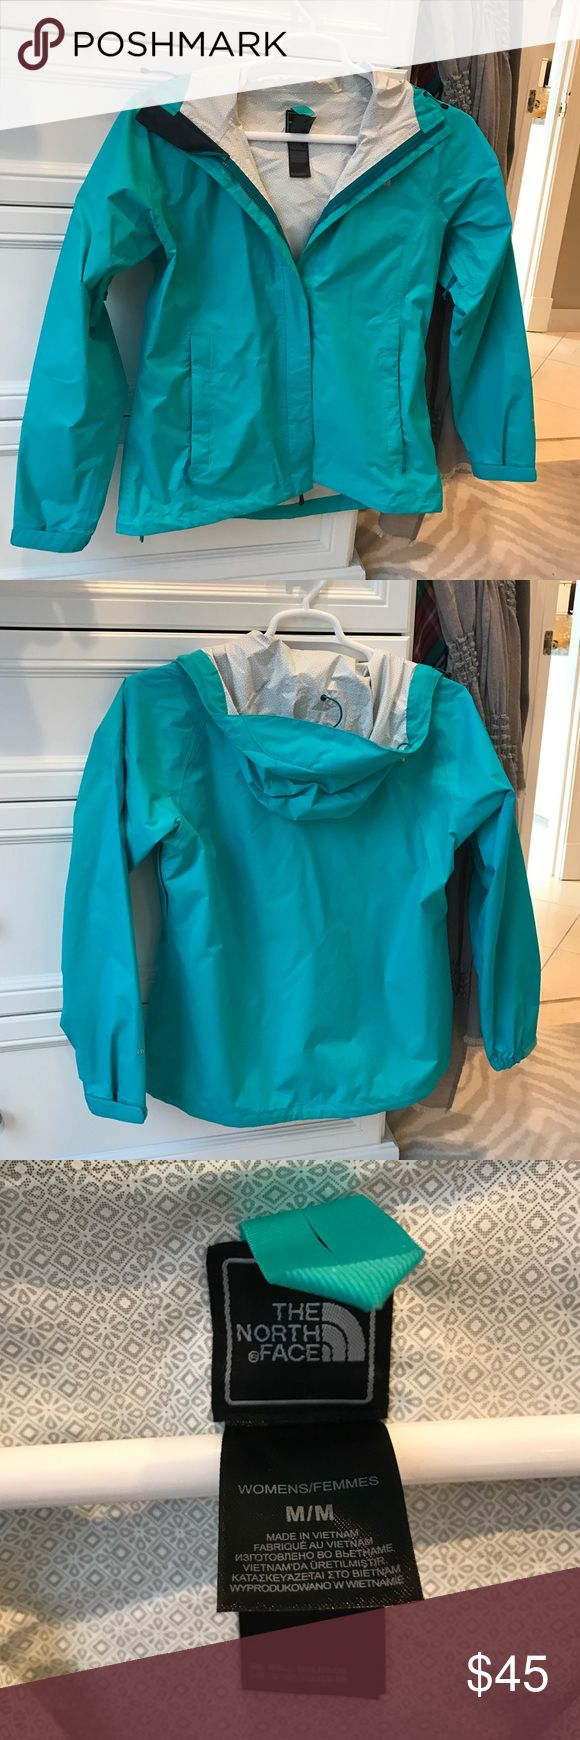 The North Face Women's Rain Jacket Excellent condition, no stains or flaws, teal green The North Face Jackets & Coats